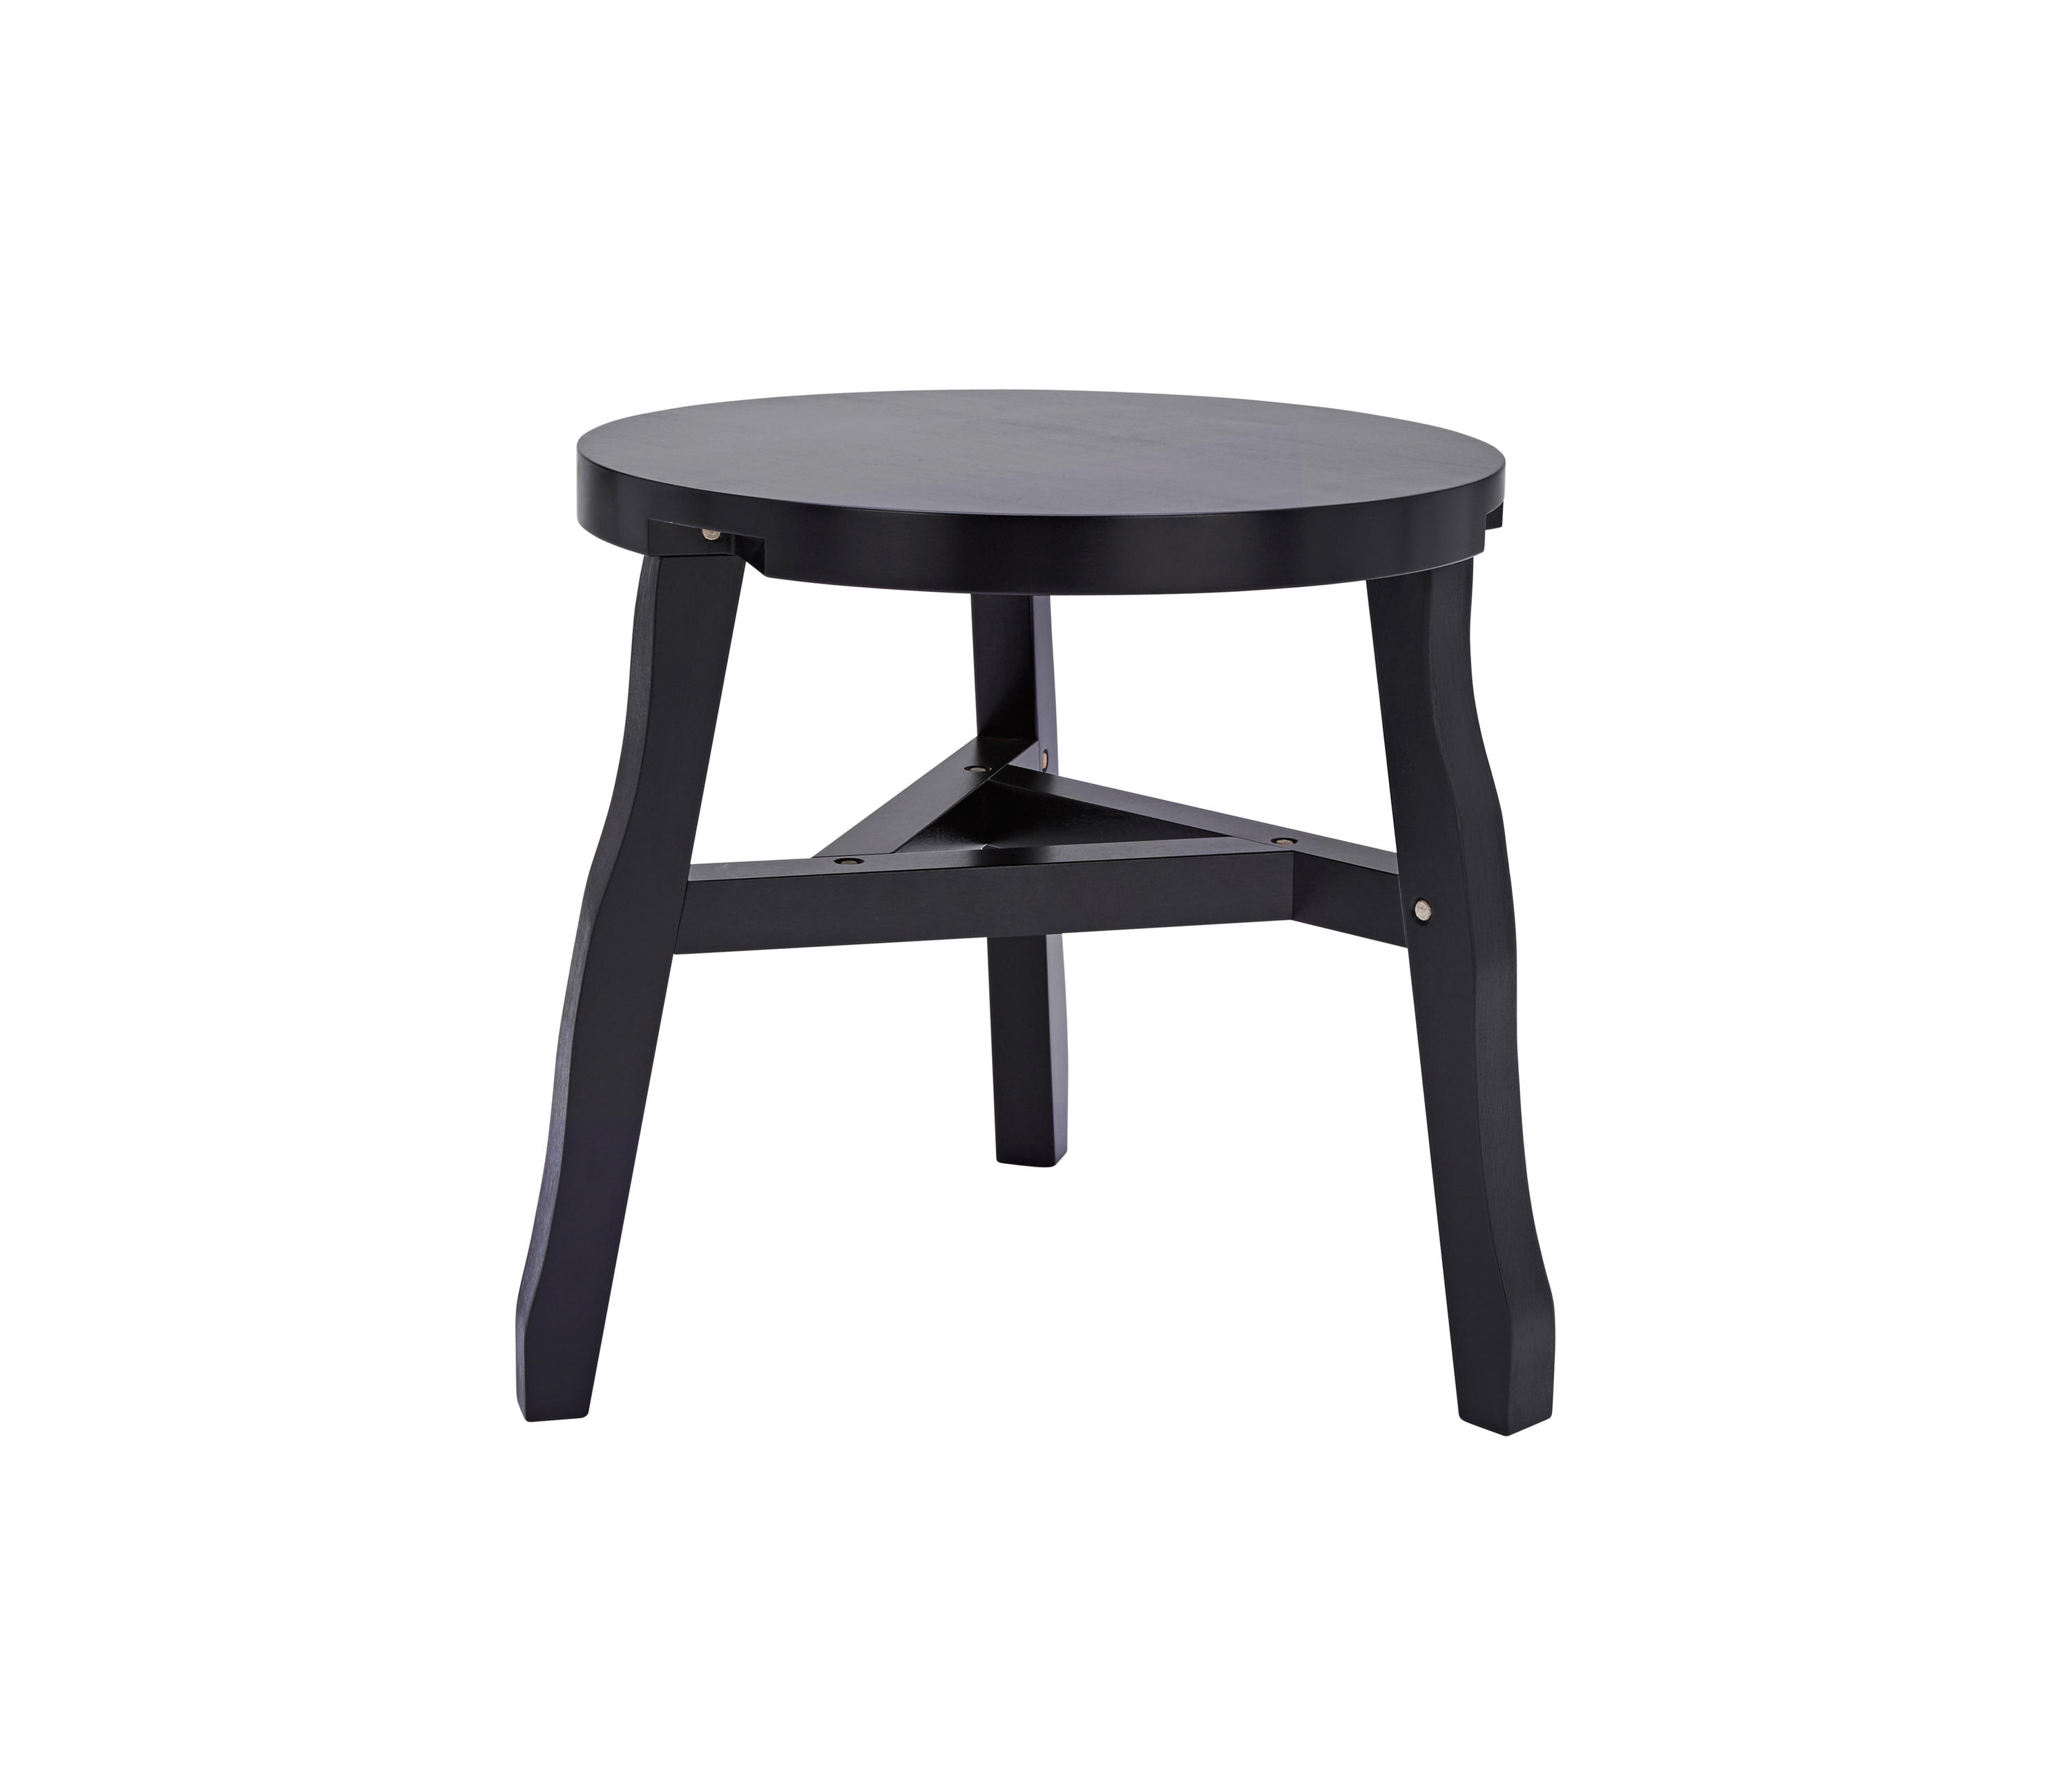 Offcut side table black tables from tom dixon